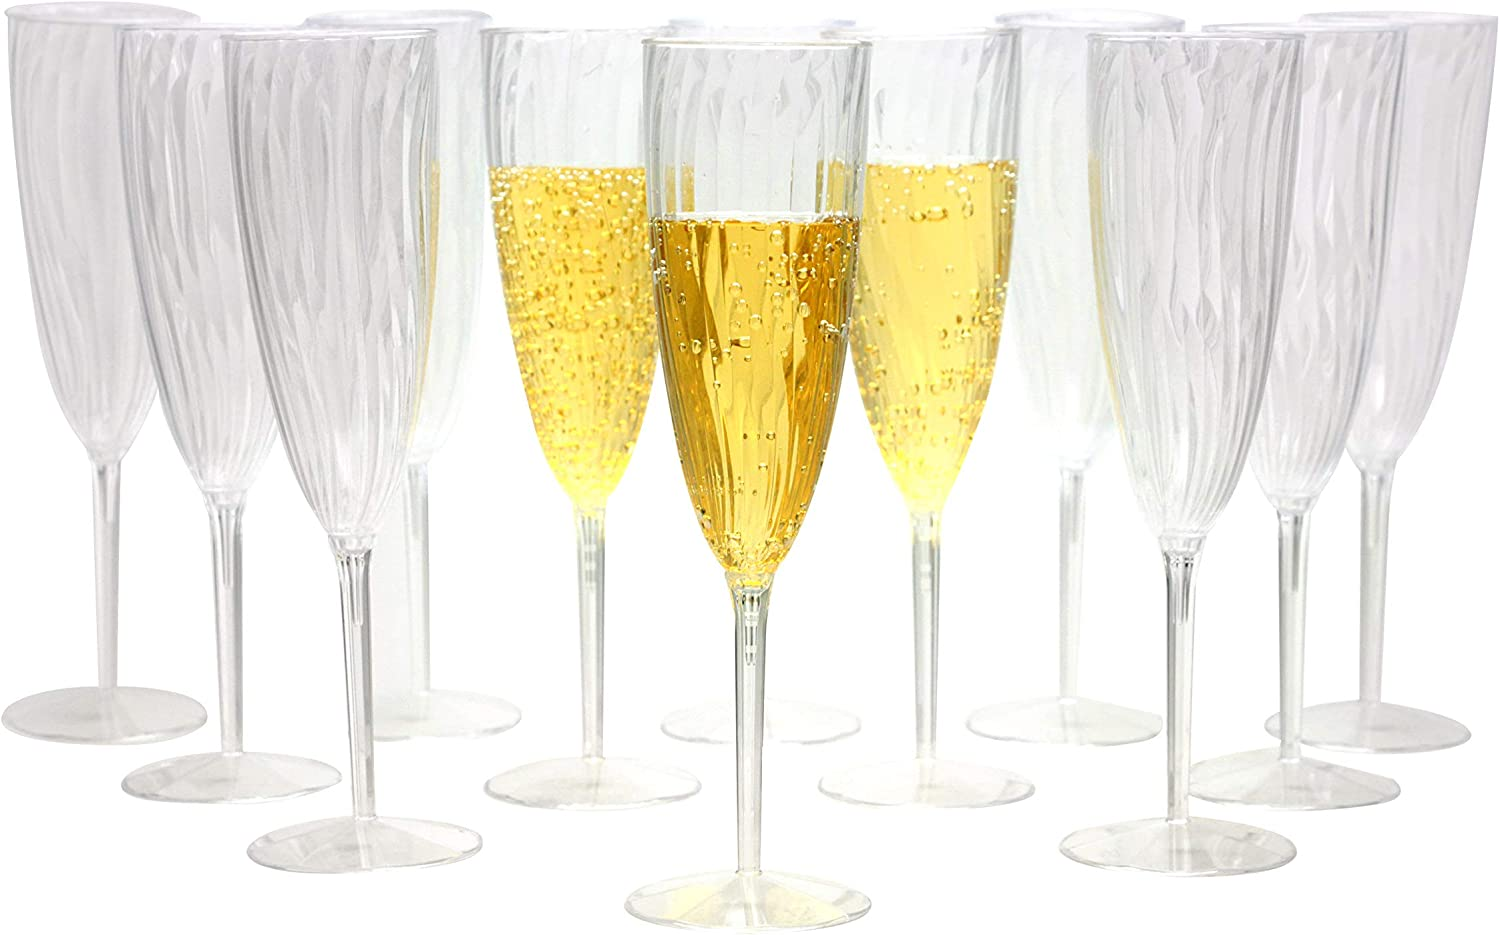 Signature Collection 20 Count Heavyweight Plastic Champagne Flute 5-Ounce Hanna K